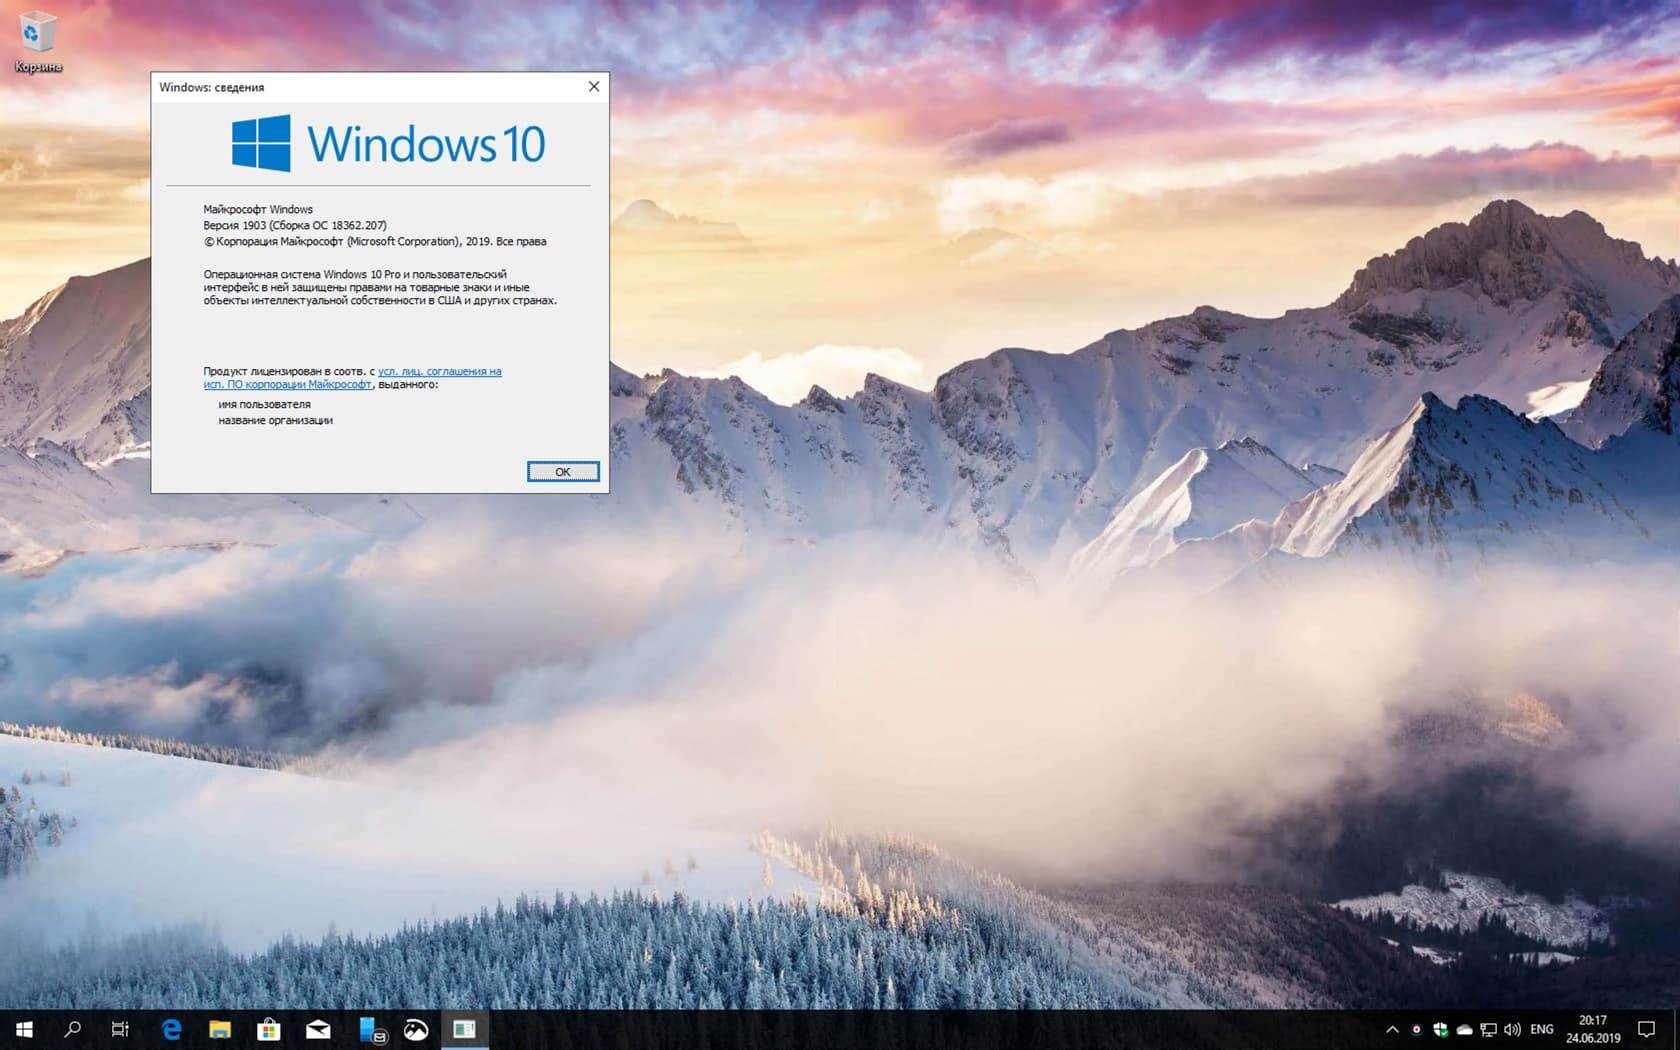 Windows 10 Build 18362.207 (версия 1903)